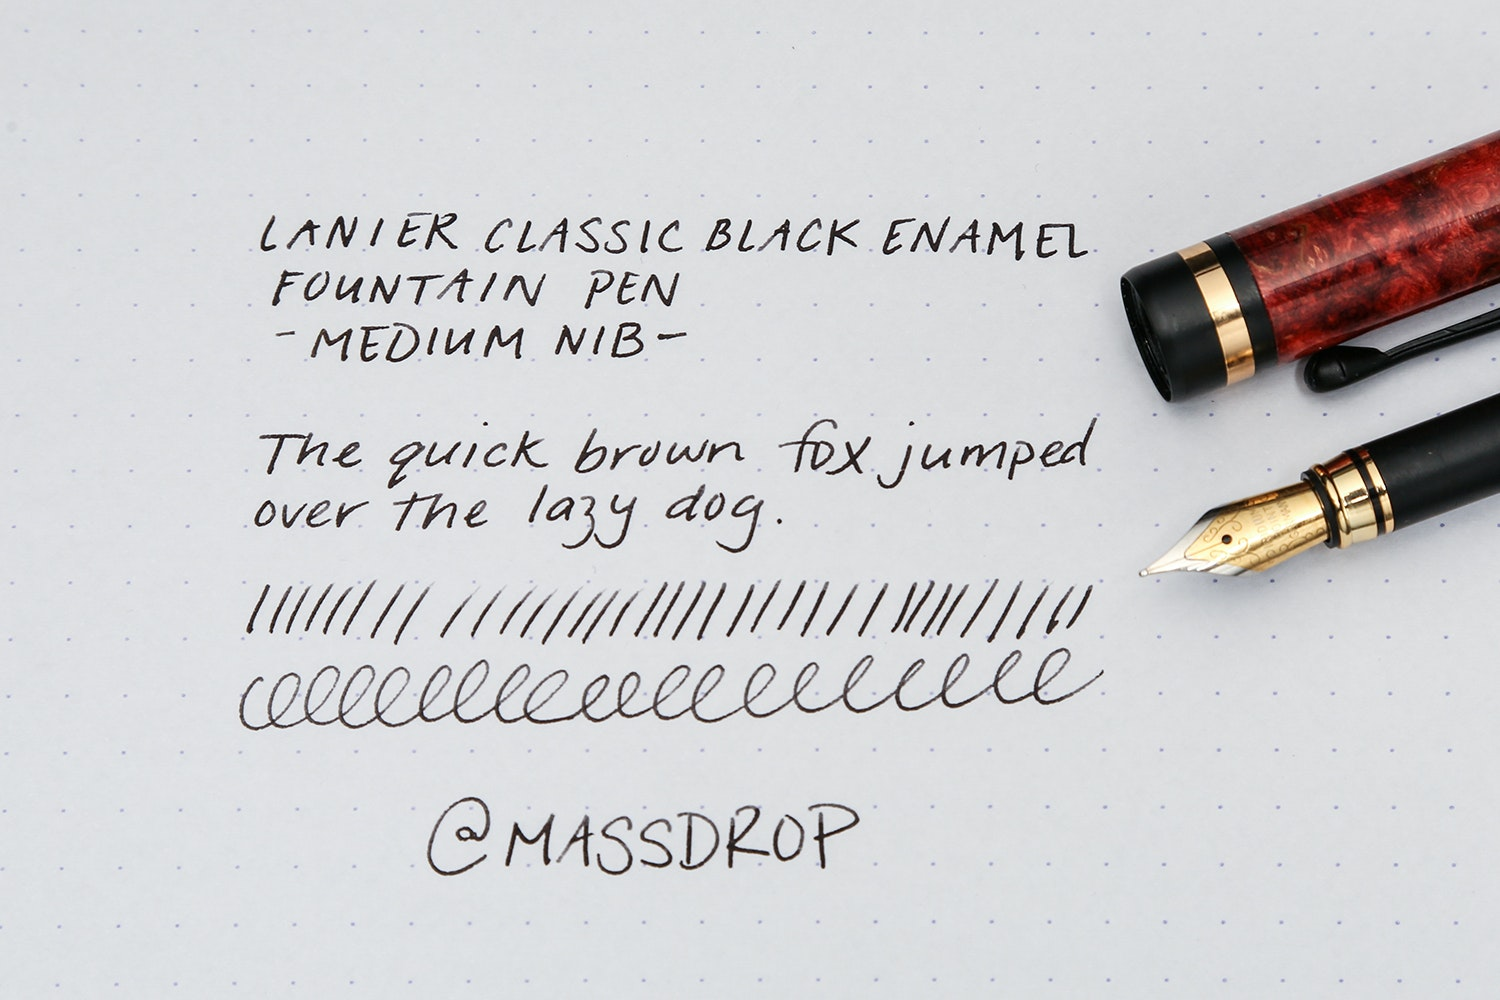 Lanier Classic Black Enamel Fountain Pen